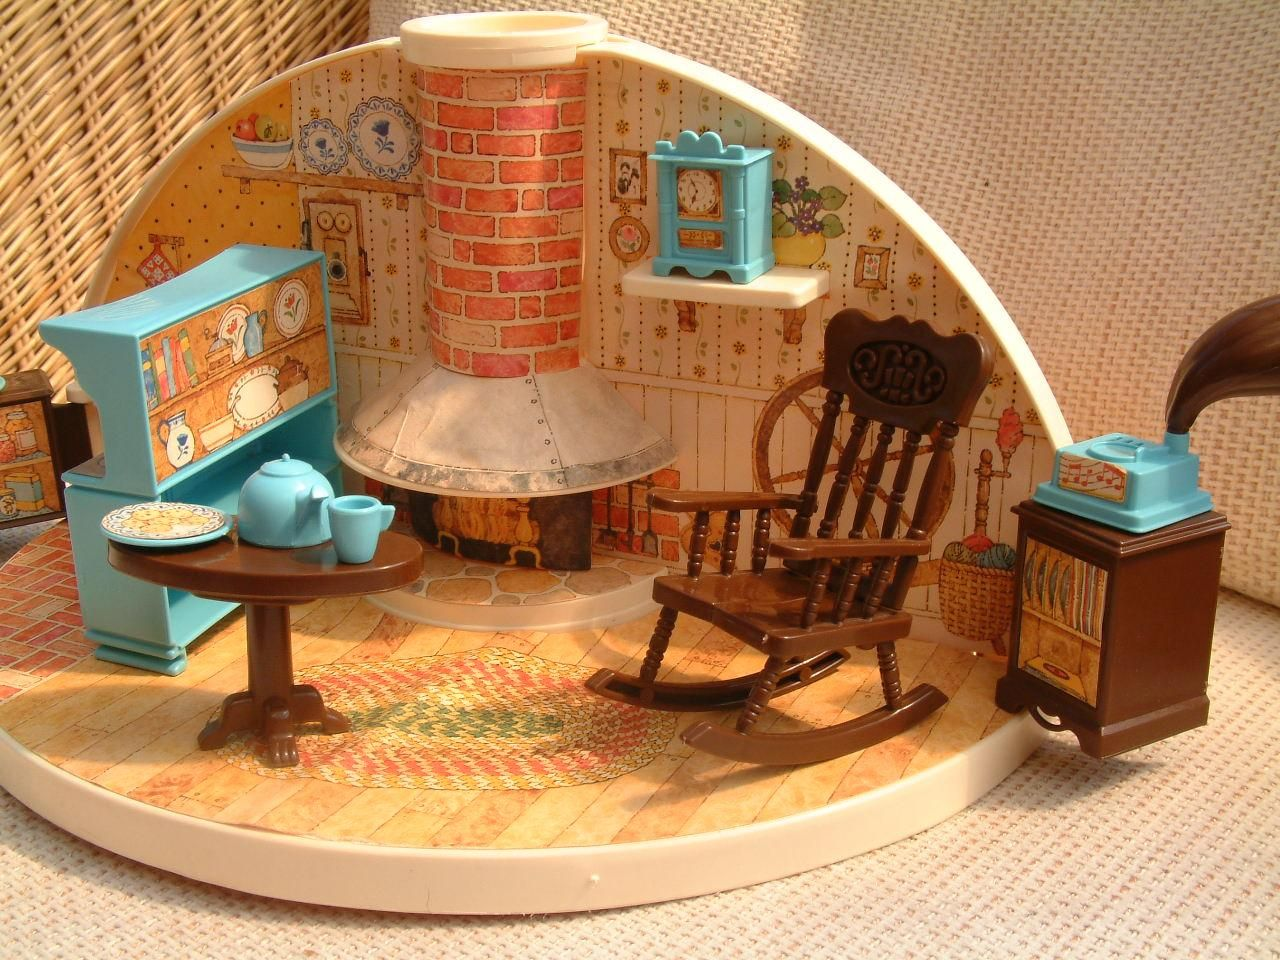 Holly Hobby Doll House 2 Games for Kids and Girls